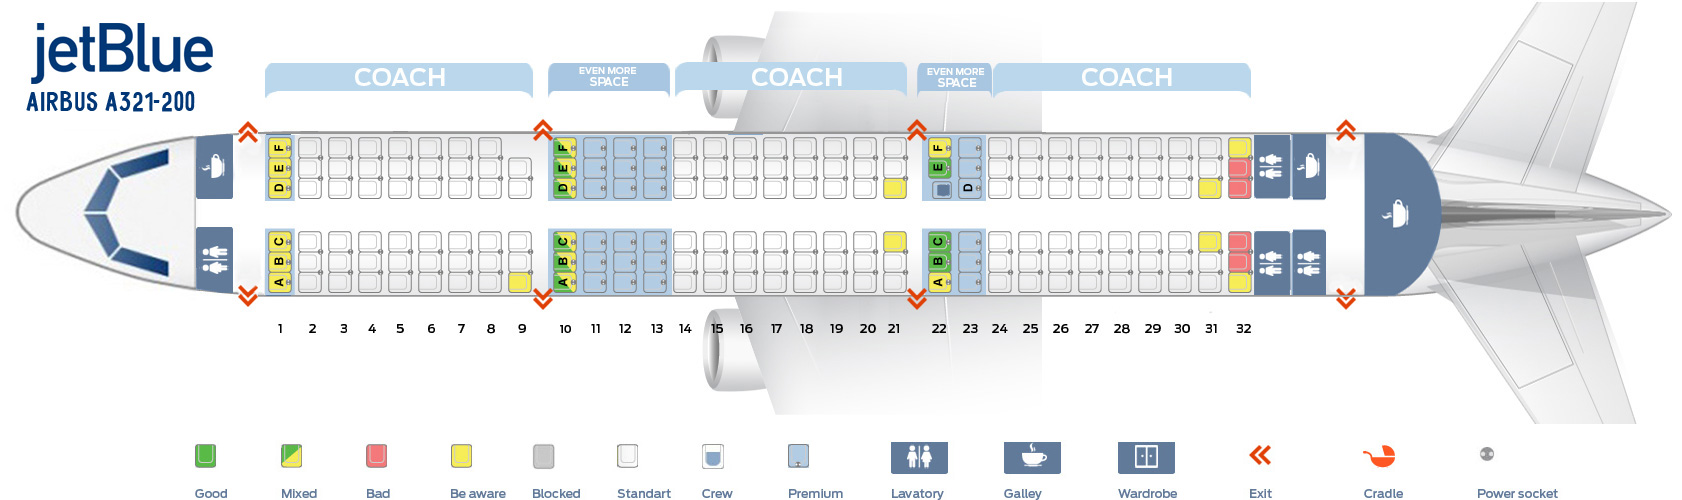 Seat map airbus a321 200 jetblue best seats in plane